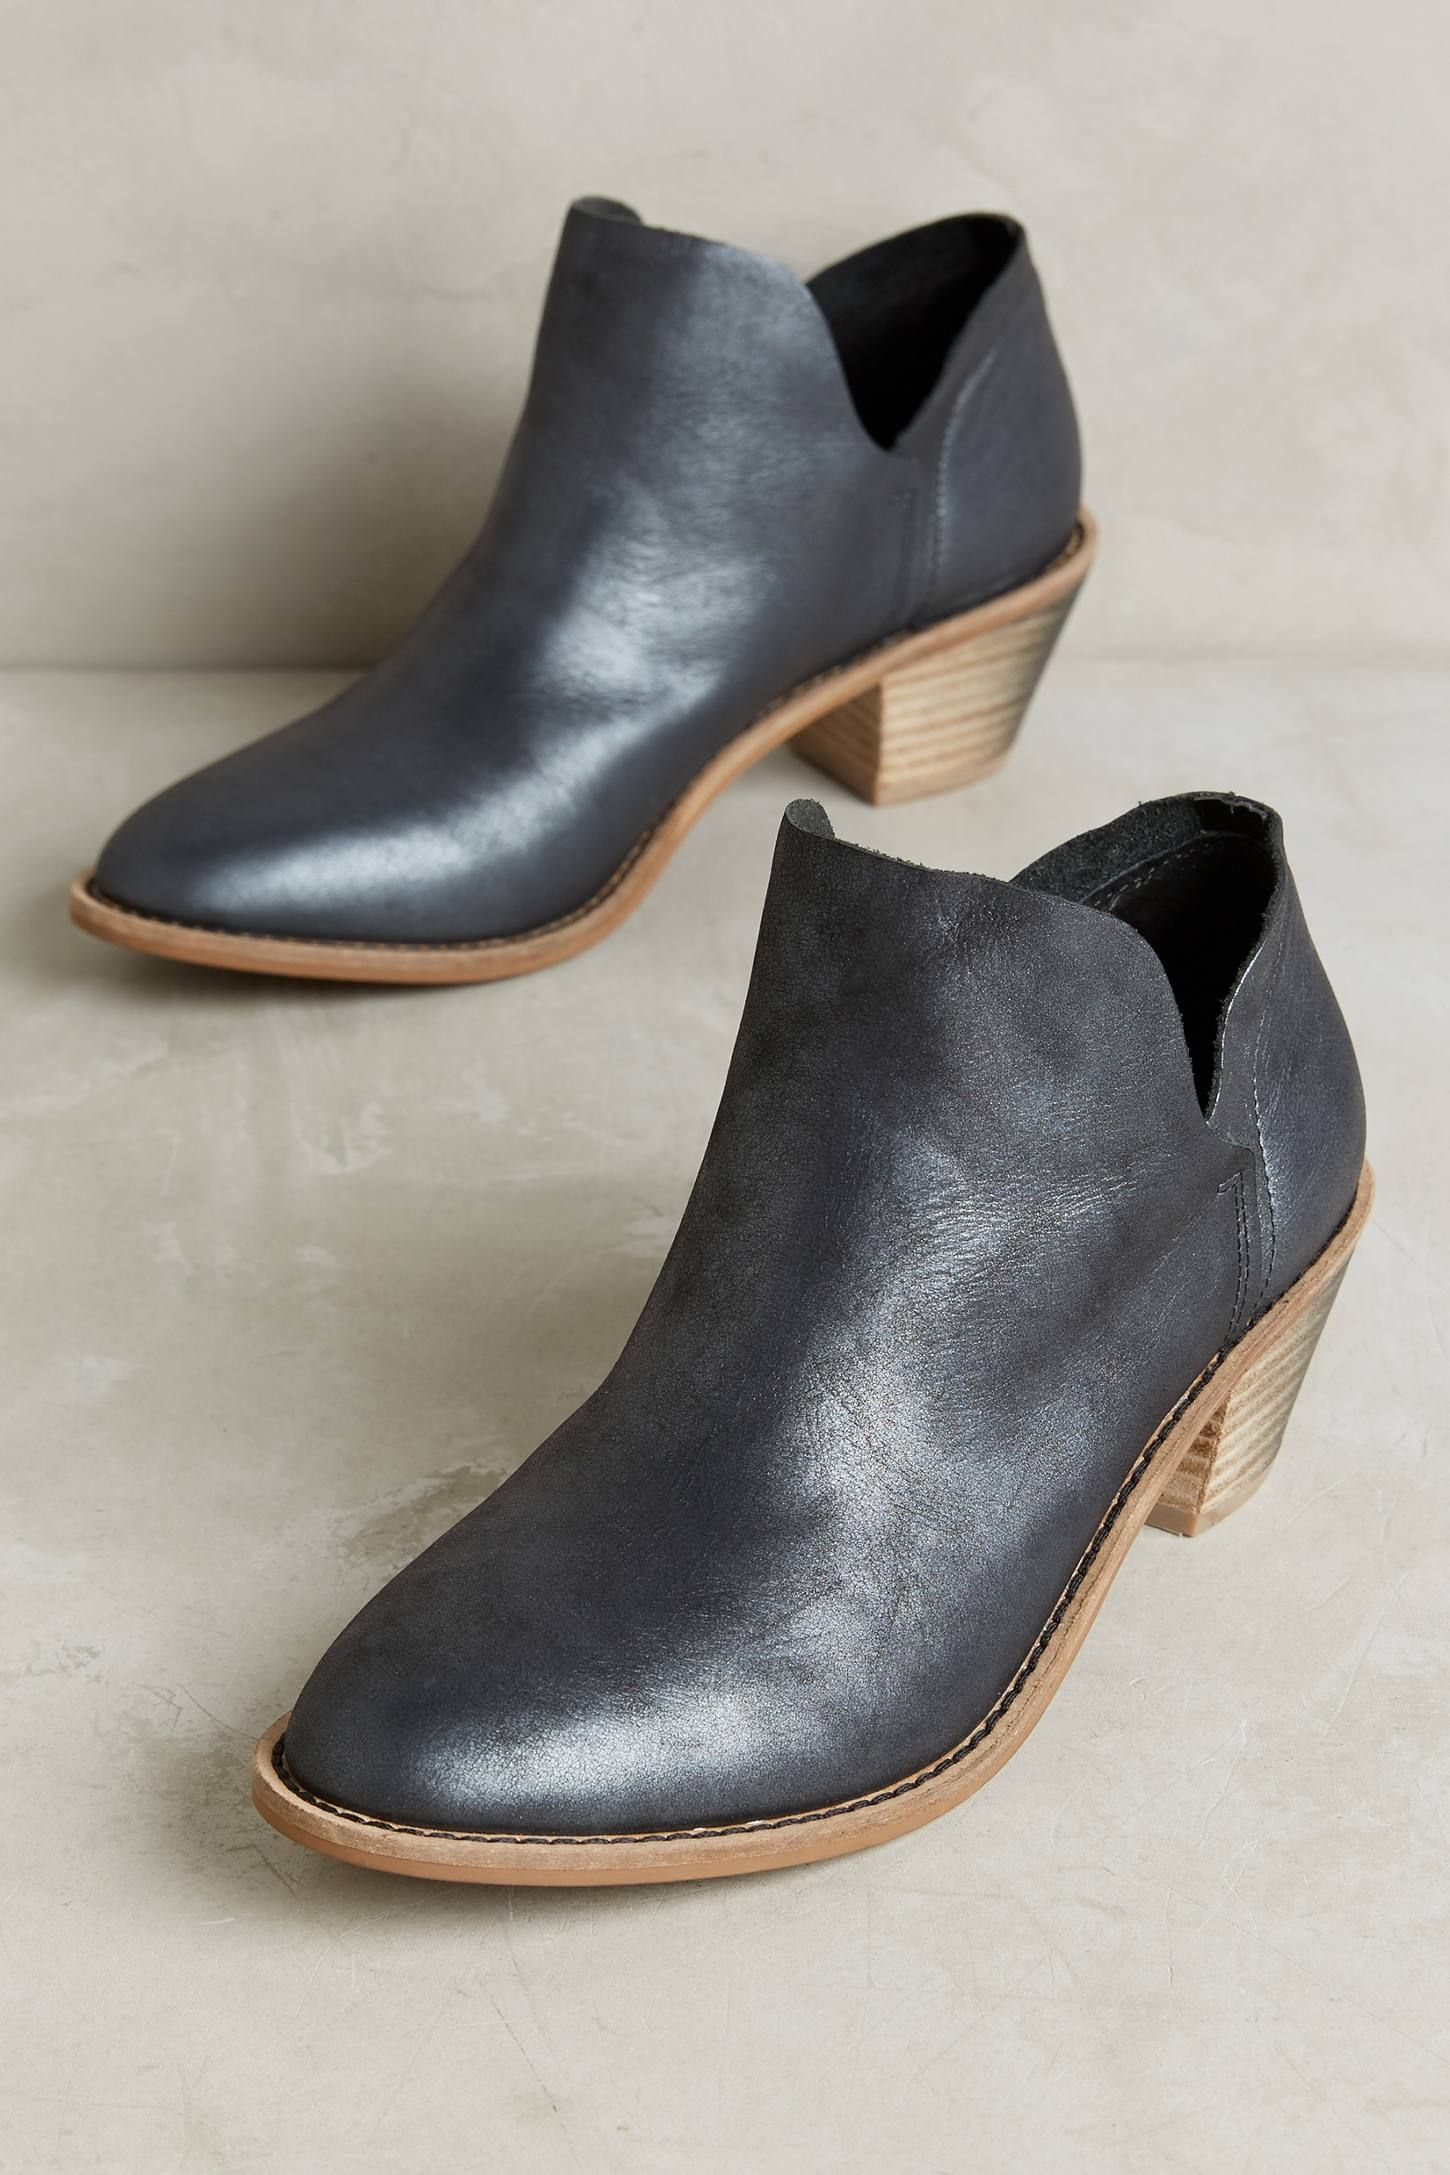 Kelsi Dagger Brooklyn Kenmare Ankle Booties